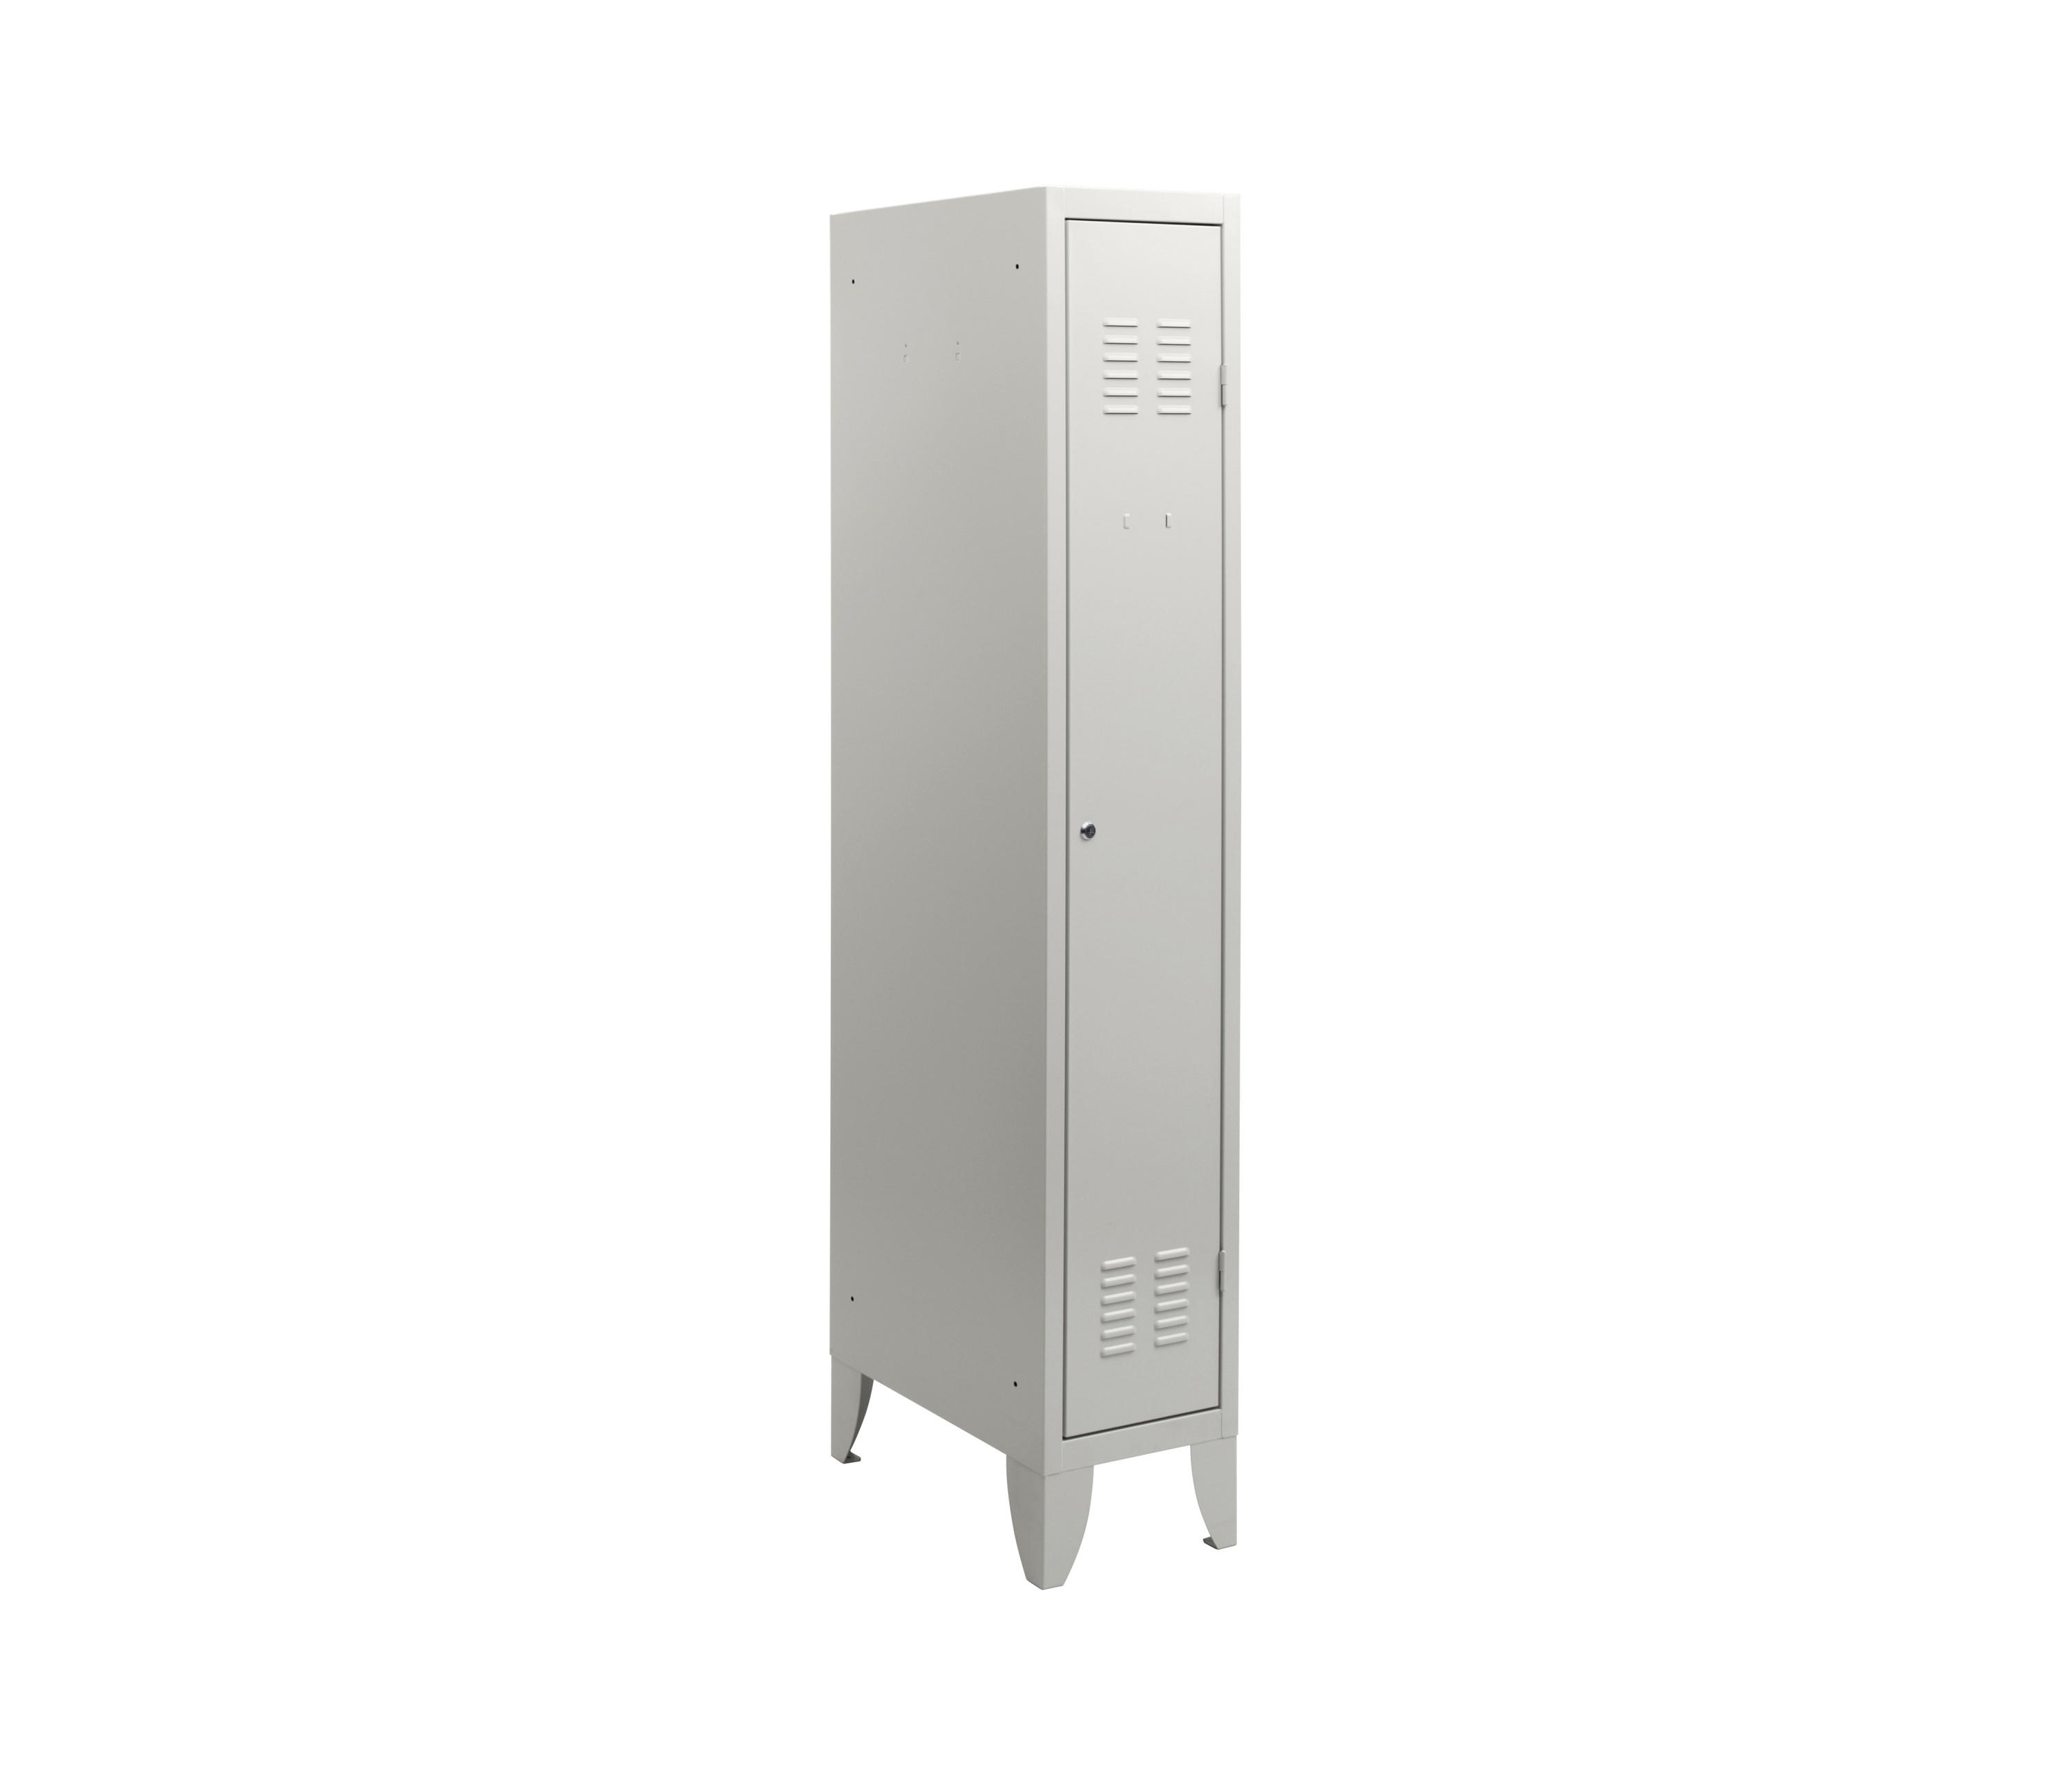 Monoplus | 1 door locker by Dieffebi | Lockers  sc 1 st  Architonic & MONOPLUS | 1 DOOR LOCKER - Lockers from Dieffebi | Architonic